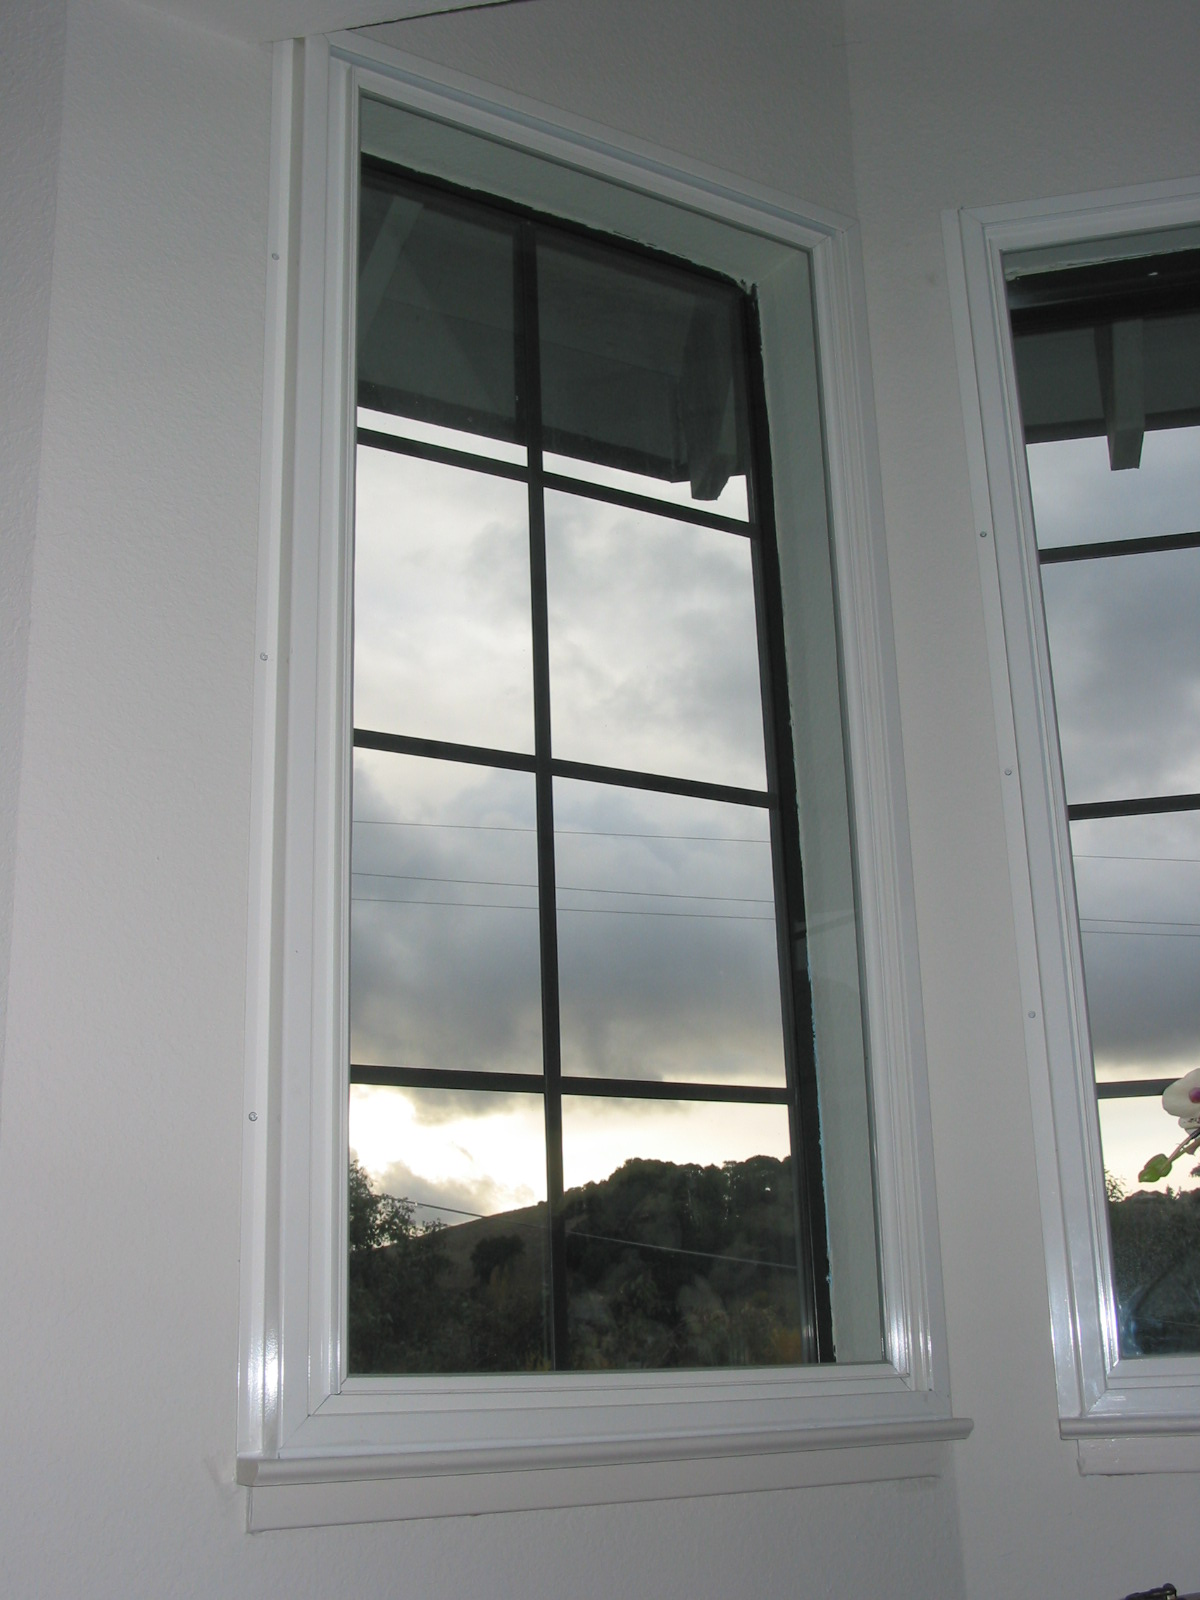 Soundproof windows - Surface Mount Soundproof Window With Sill Installation